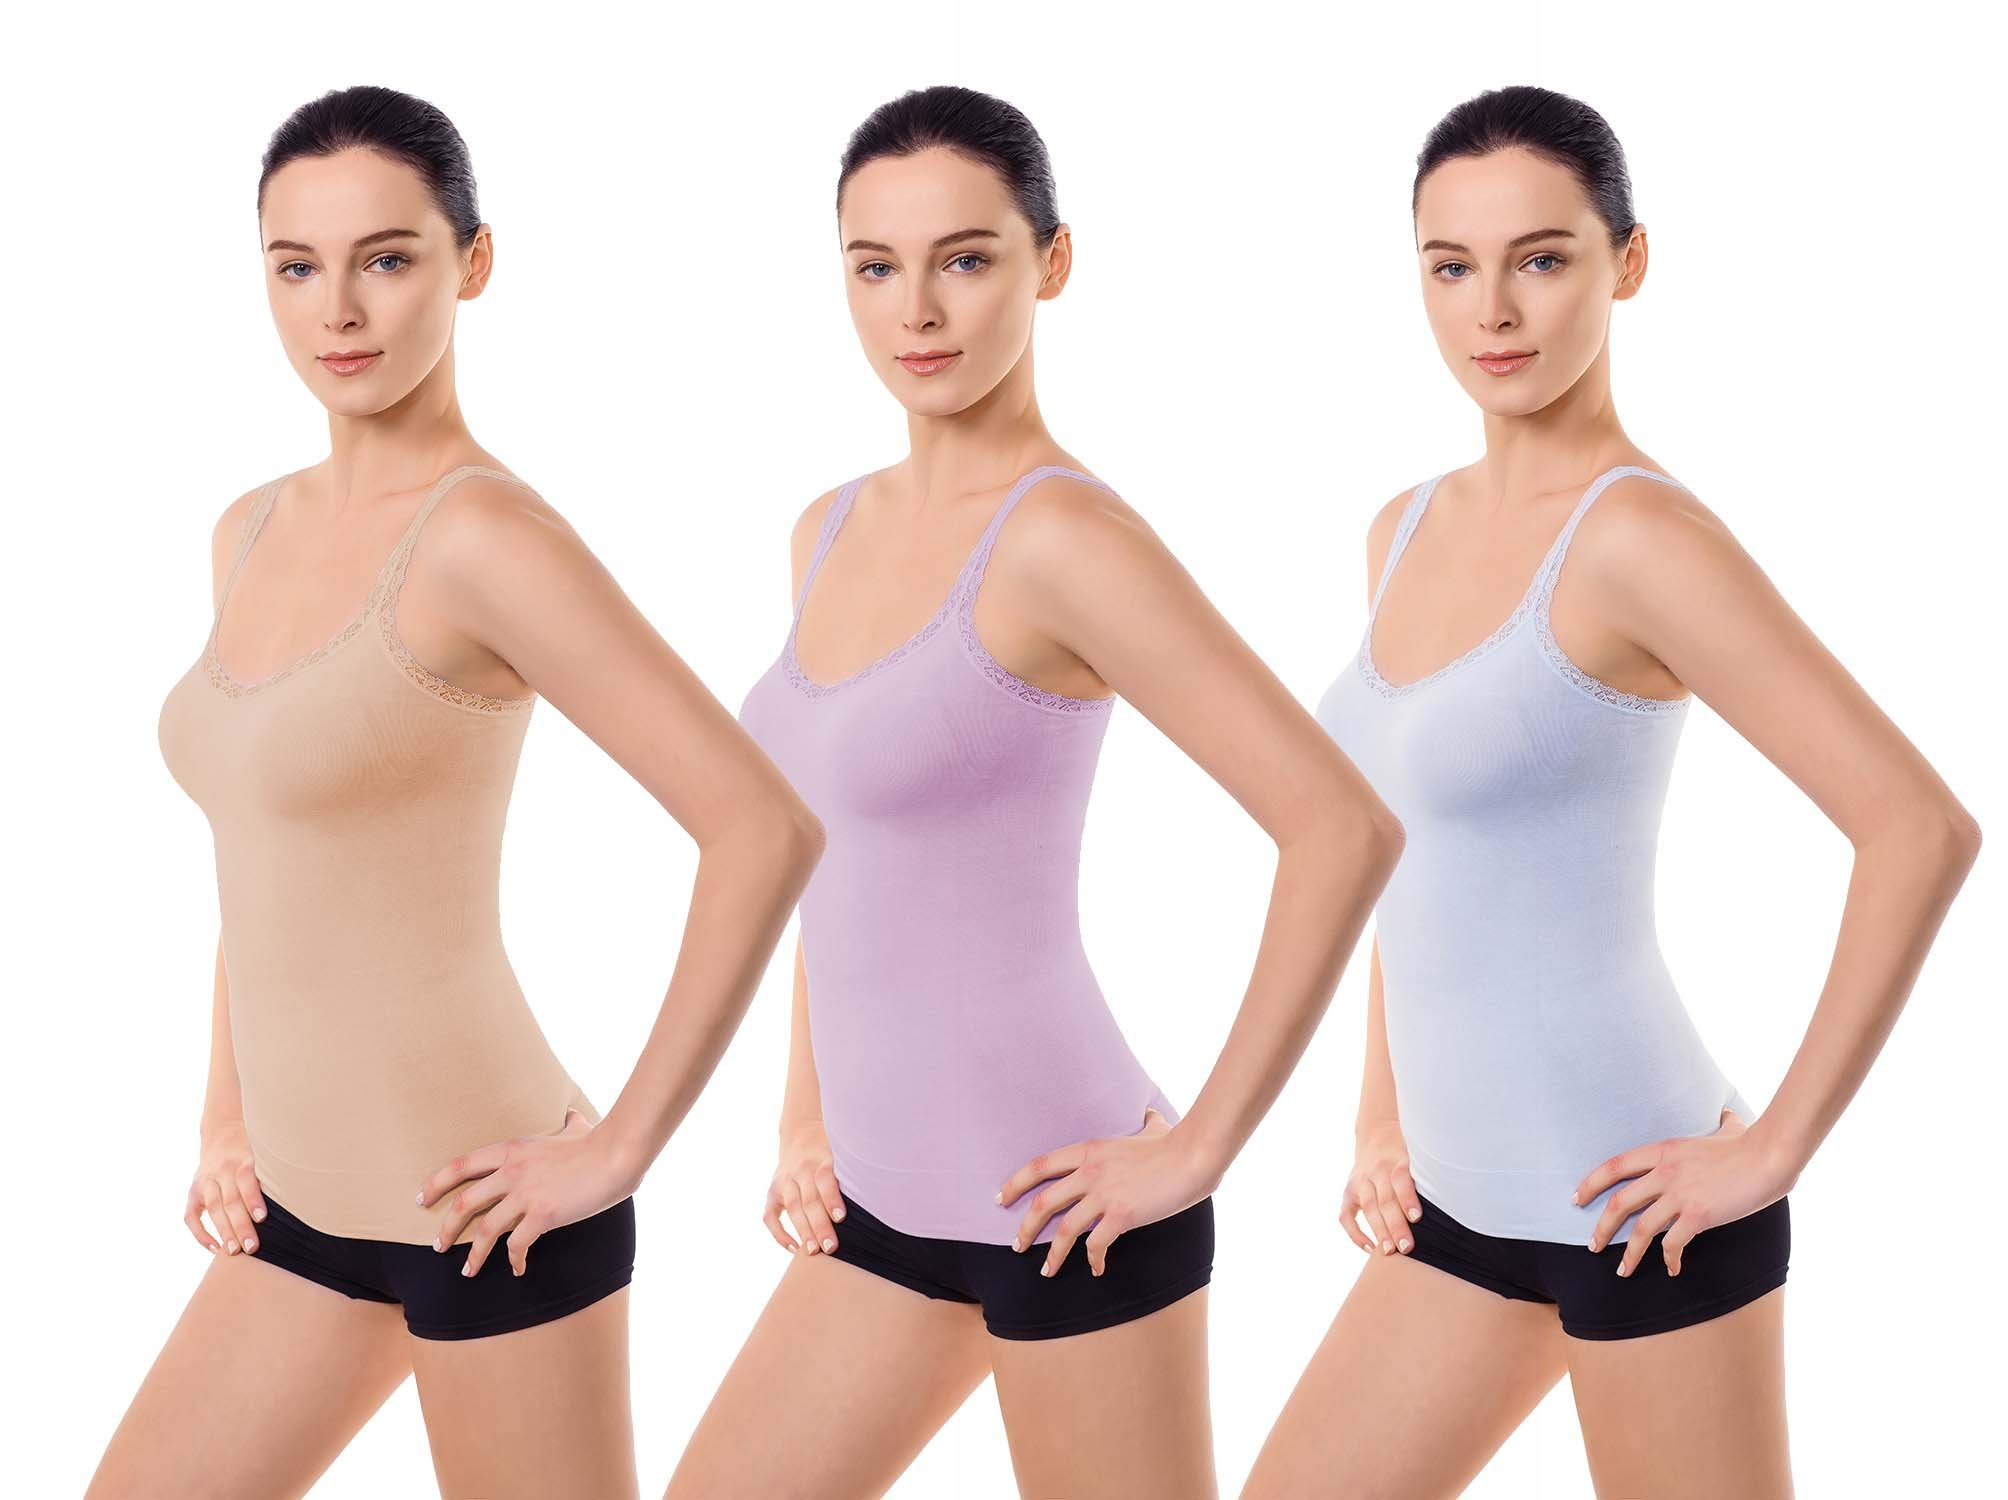 MD Women Slimming Cami Tank Top Seamless Light Control Shapewear Camisole with Adjustable Strap